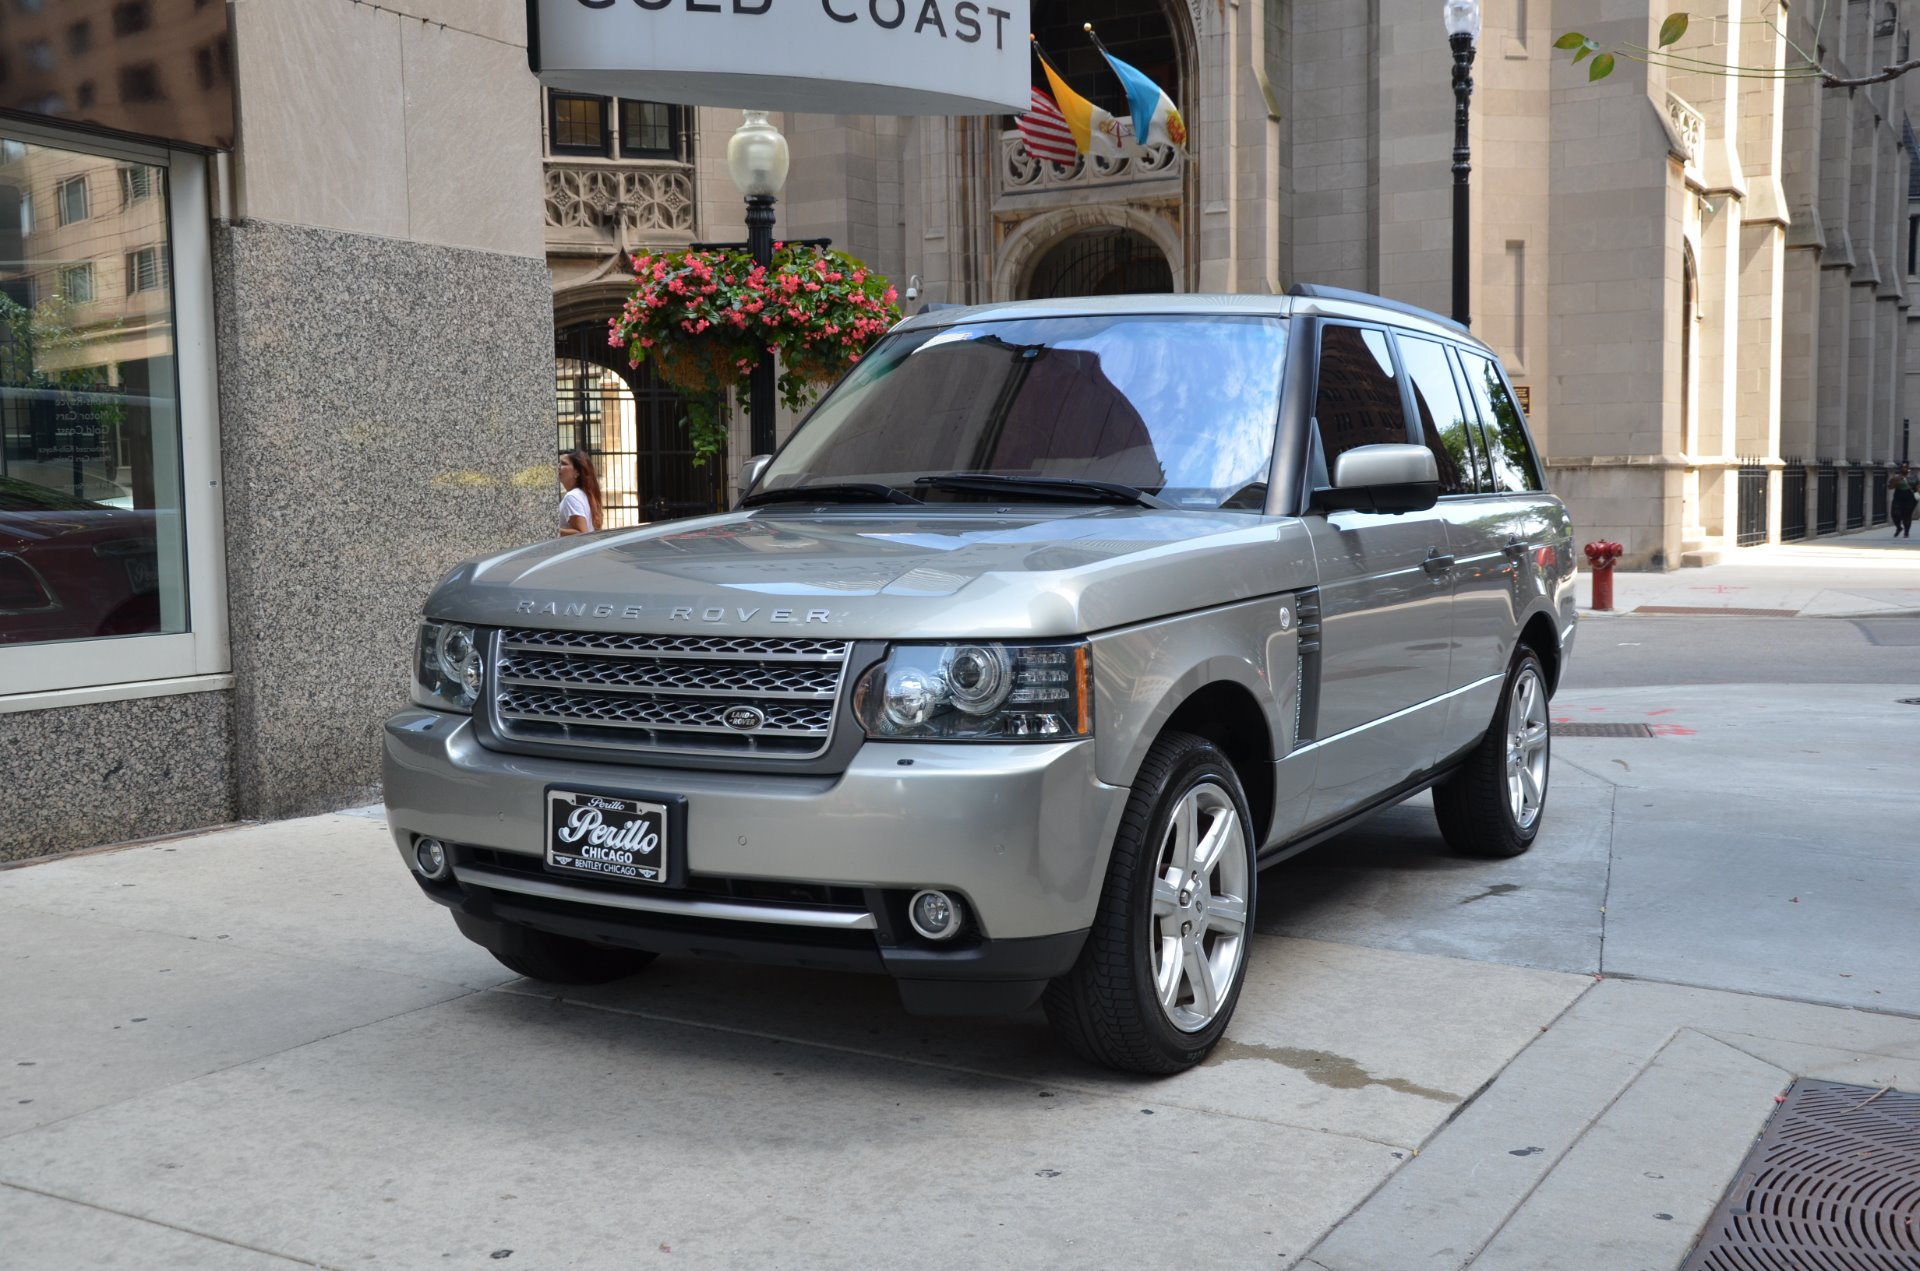 Land Rover Chicago >> 2010 Land Rover Range Rover Supercharged Stock B812b For